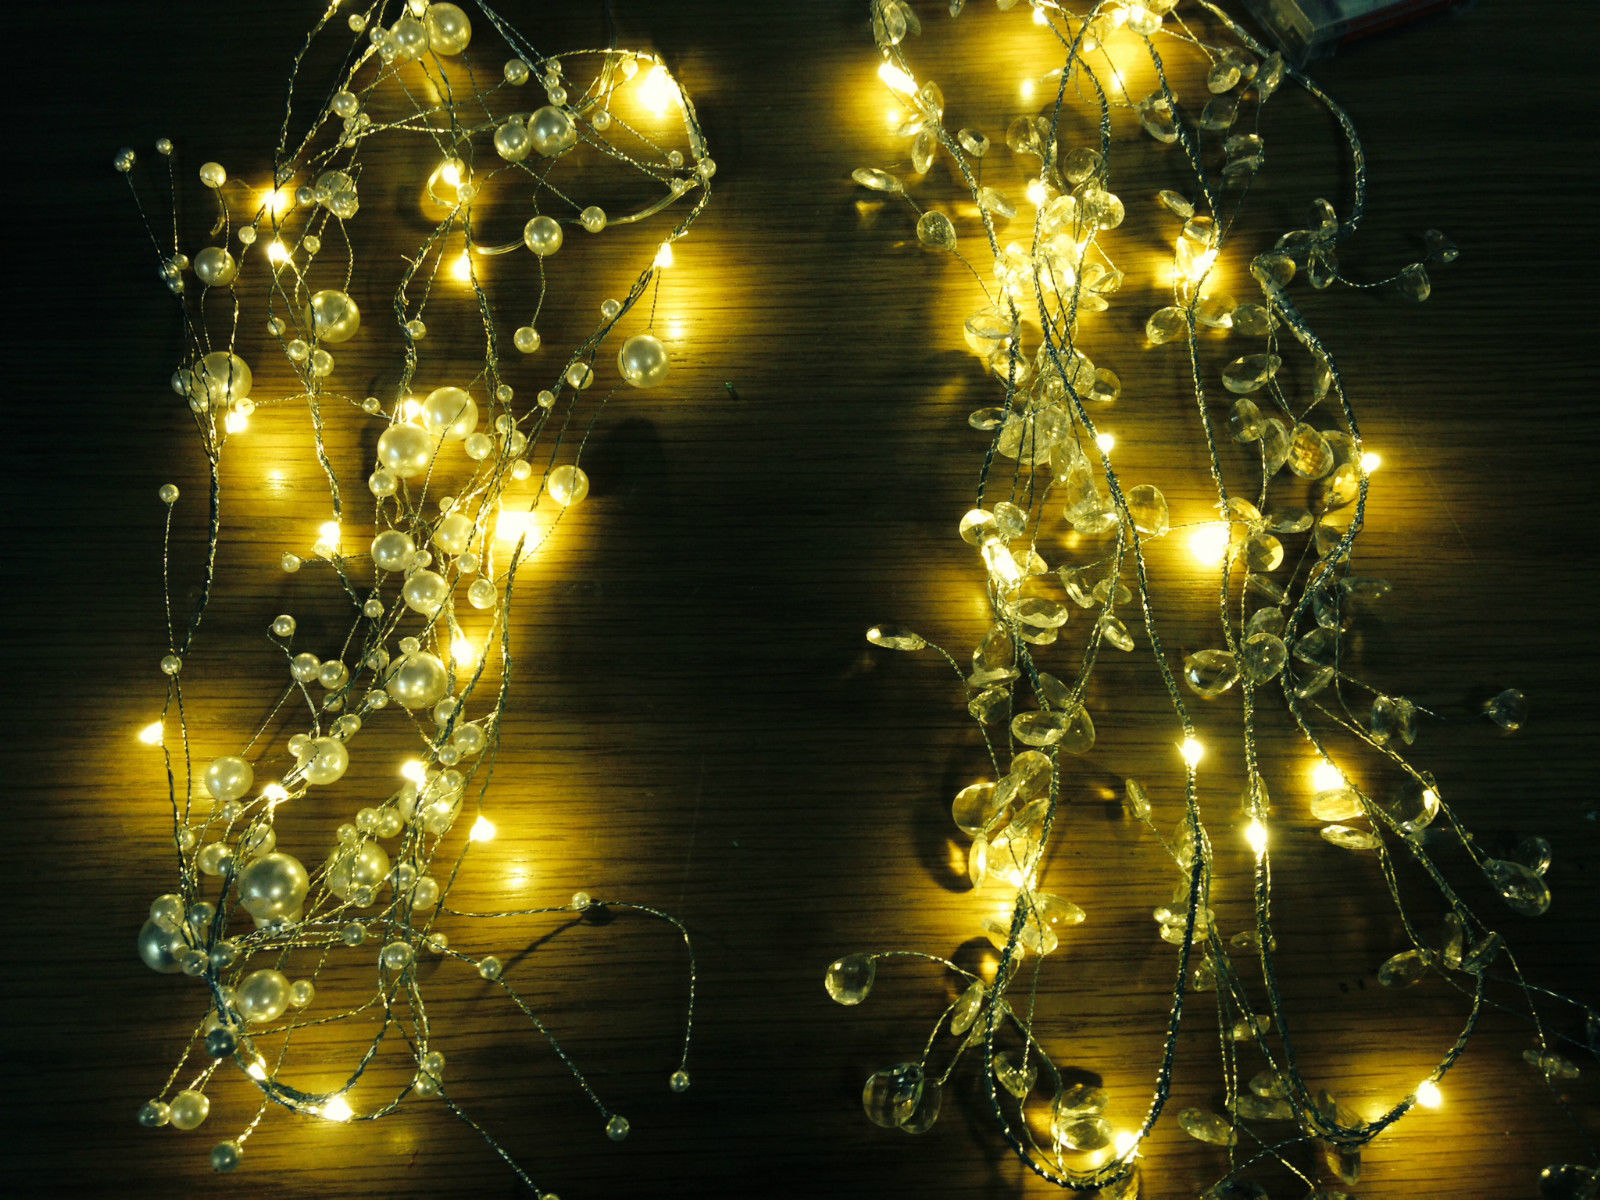 Christmas Garland String Lights : 2m WARM Wired LED Garland Christmas party string outdoor garden spray lights eBay